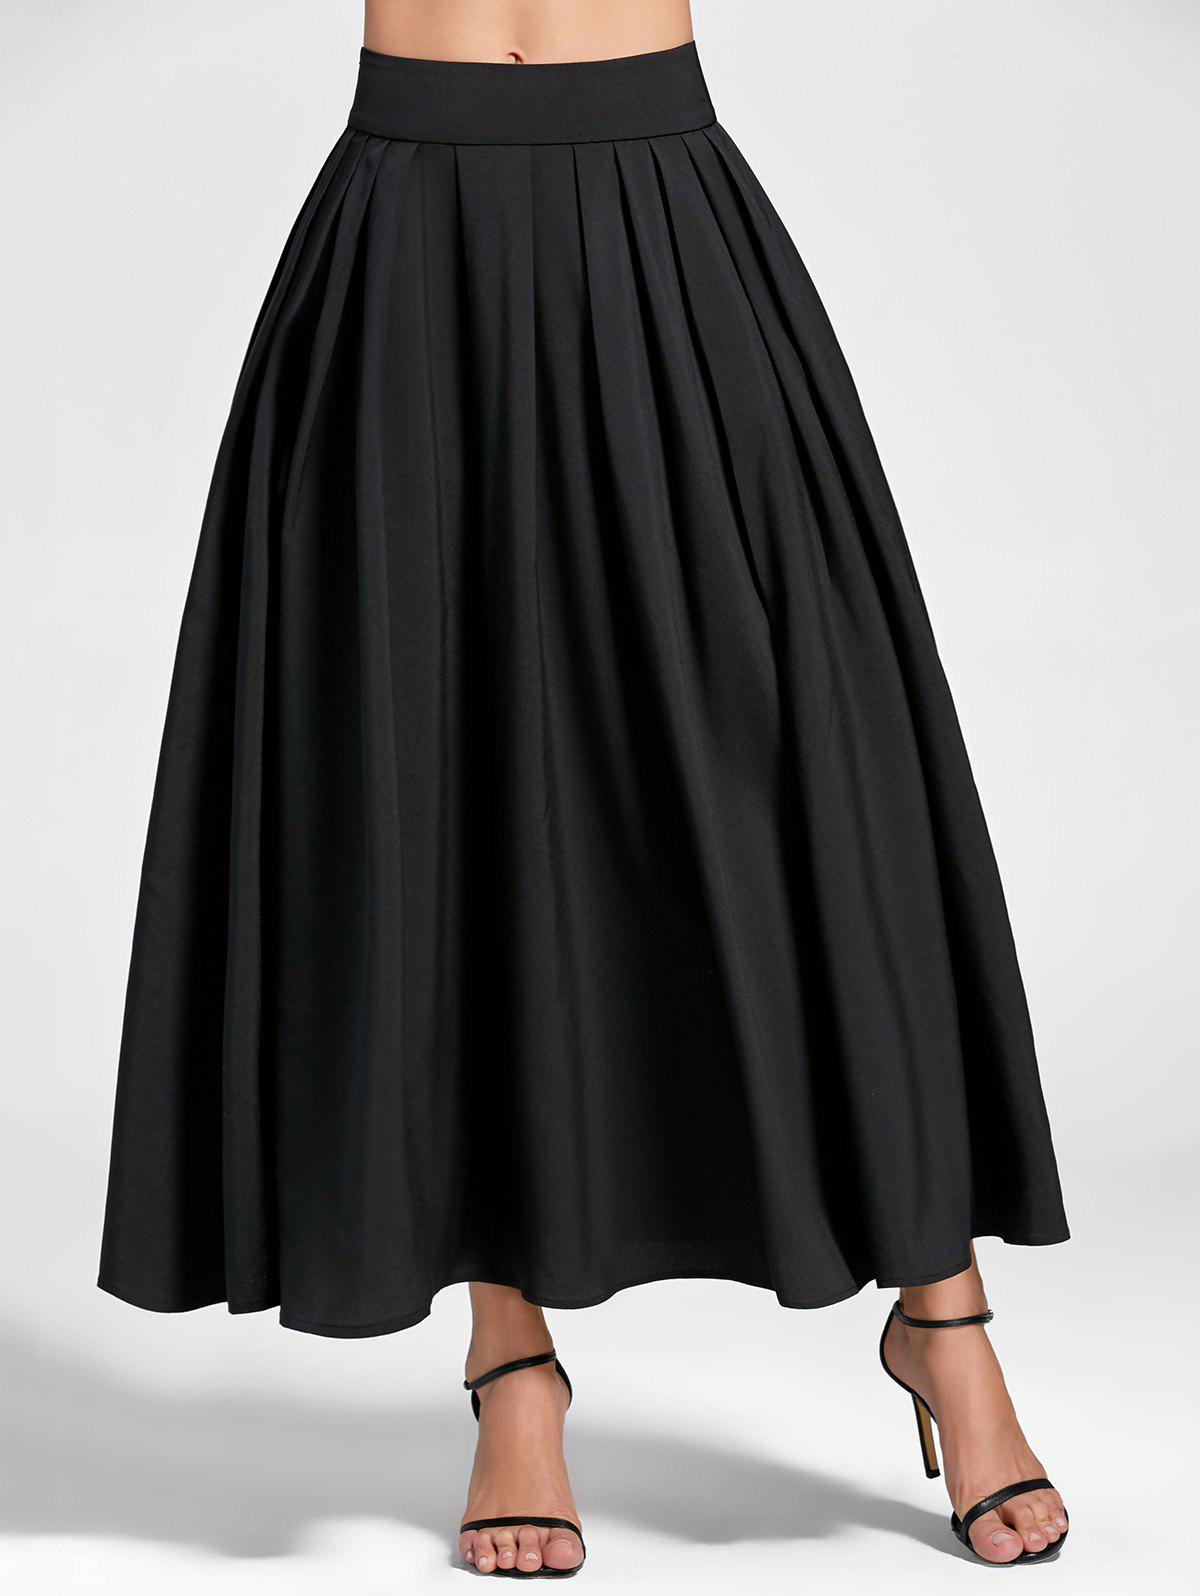 High Waist A Line Pleated Skirt - BLACK 2XL